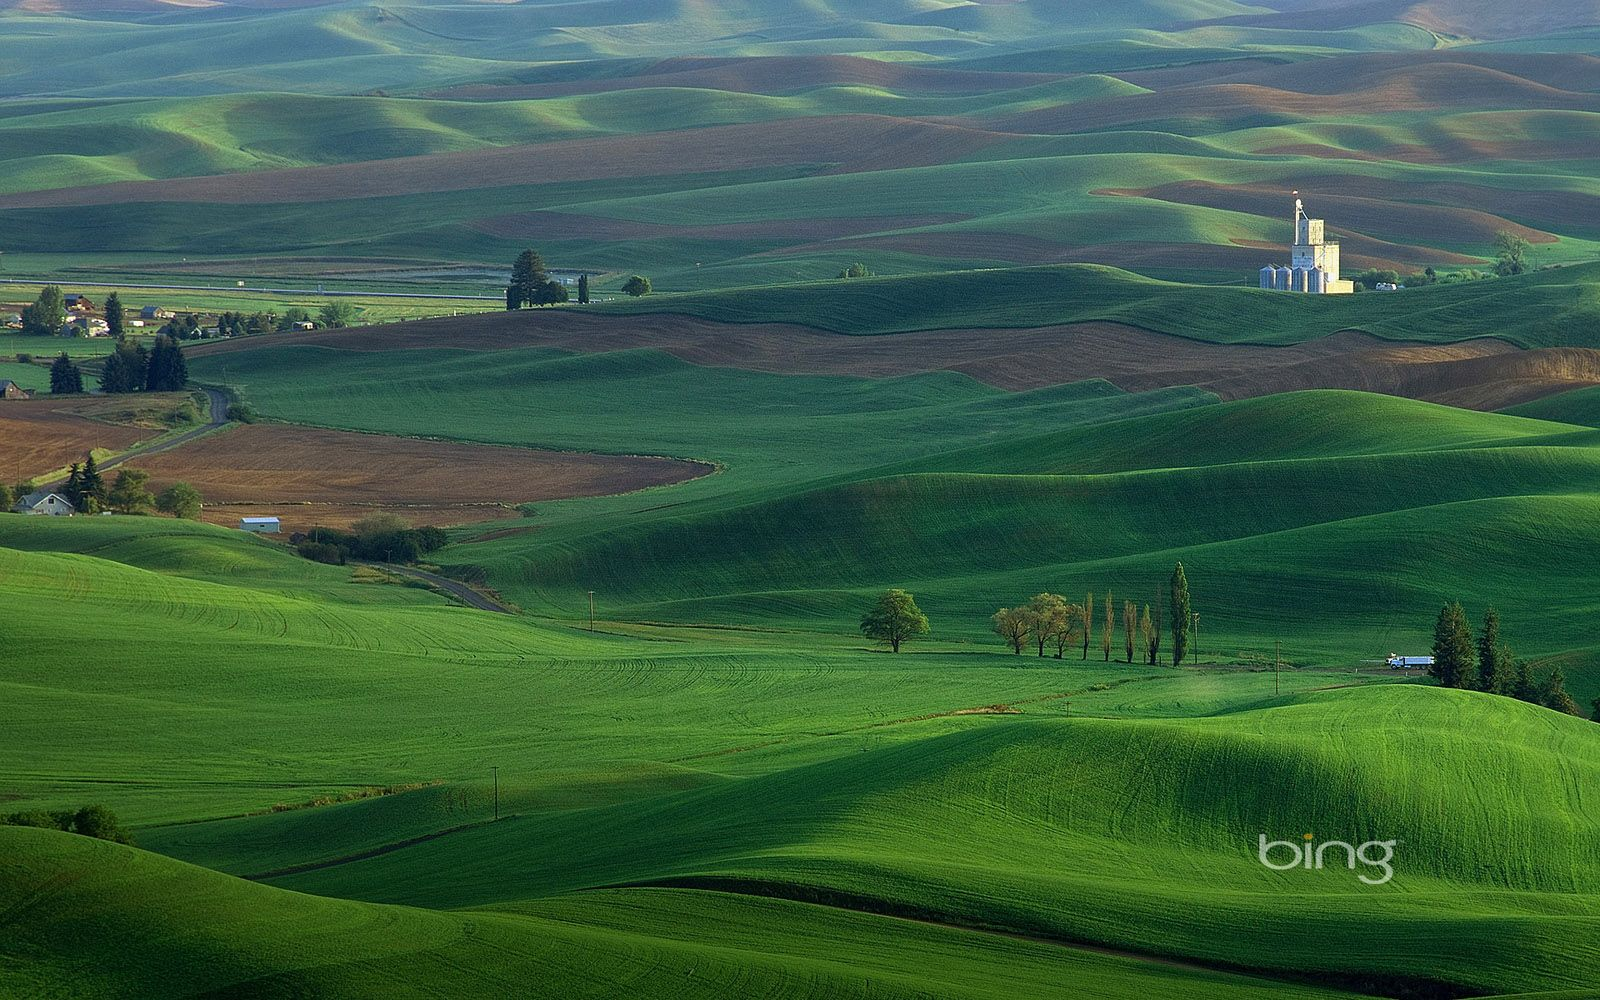 43 Best Free Bing Desktop Wallpapers Wallpaperaccess